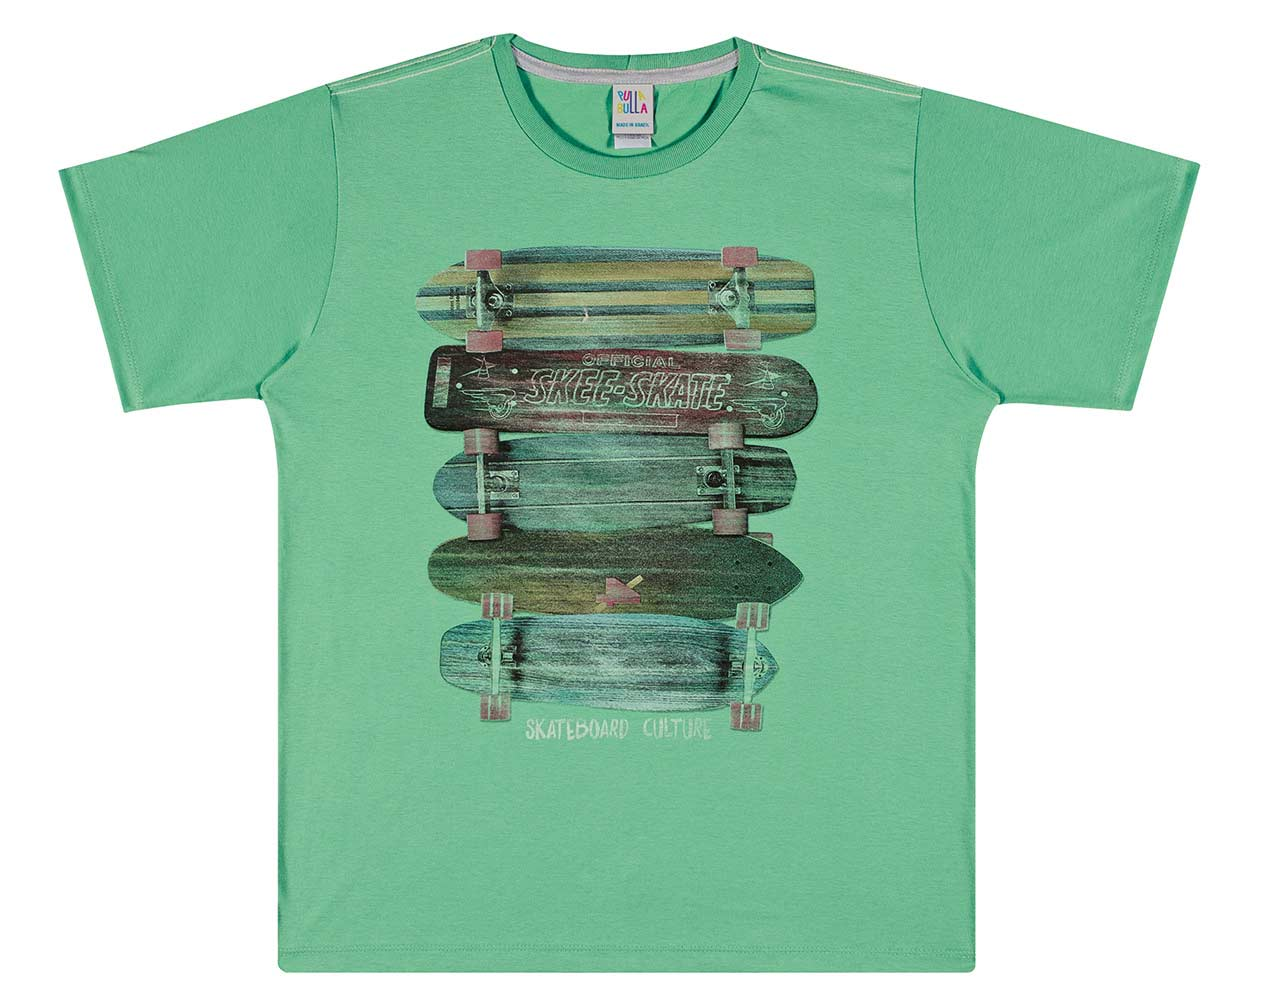 Tween boy t shirt graphic tee kids skater clothes summer for Graphic t shirts for kids